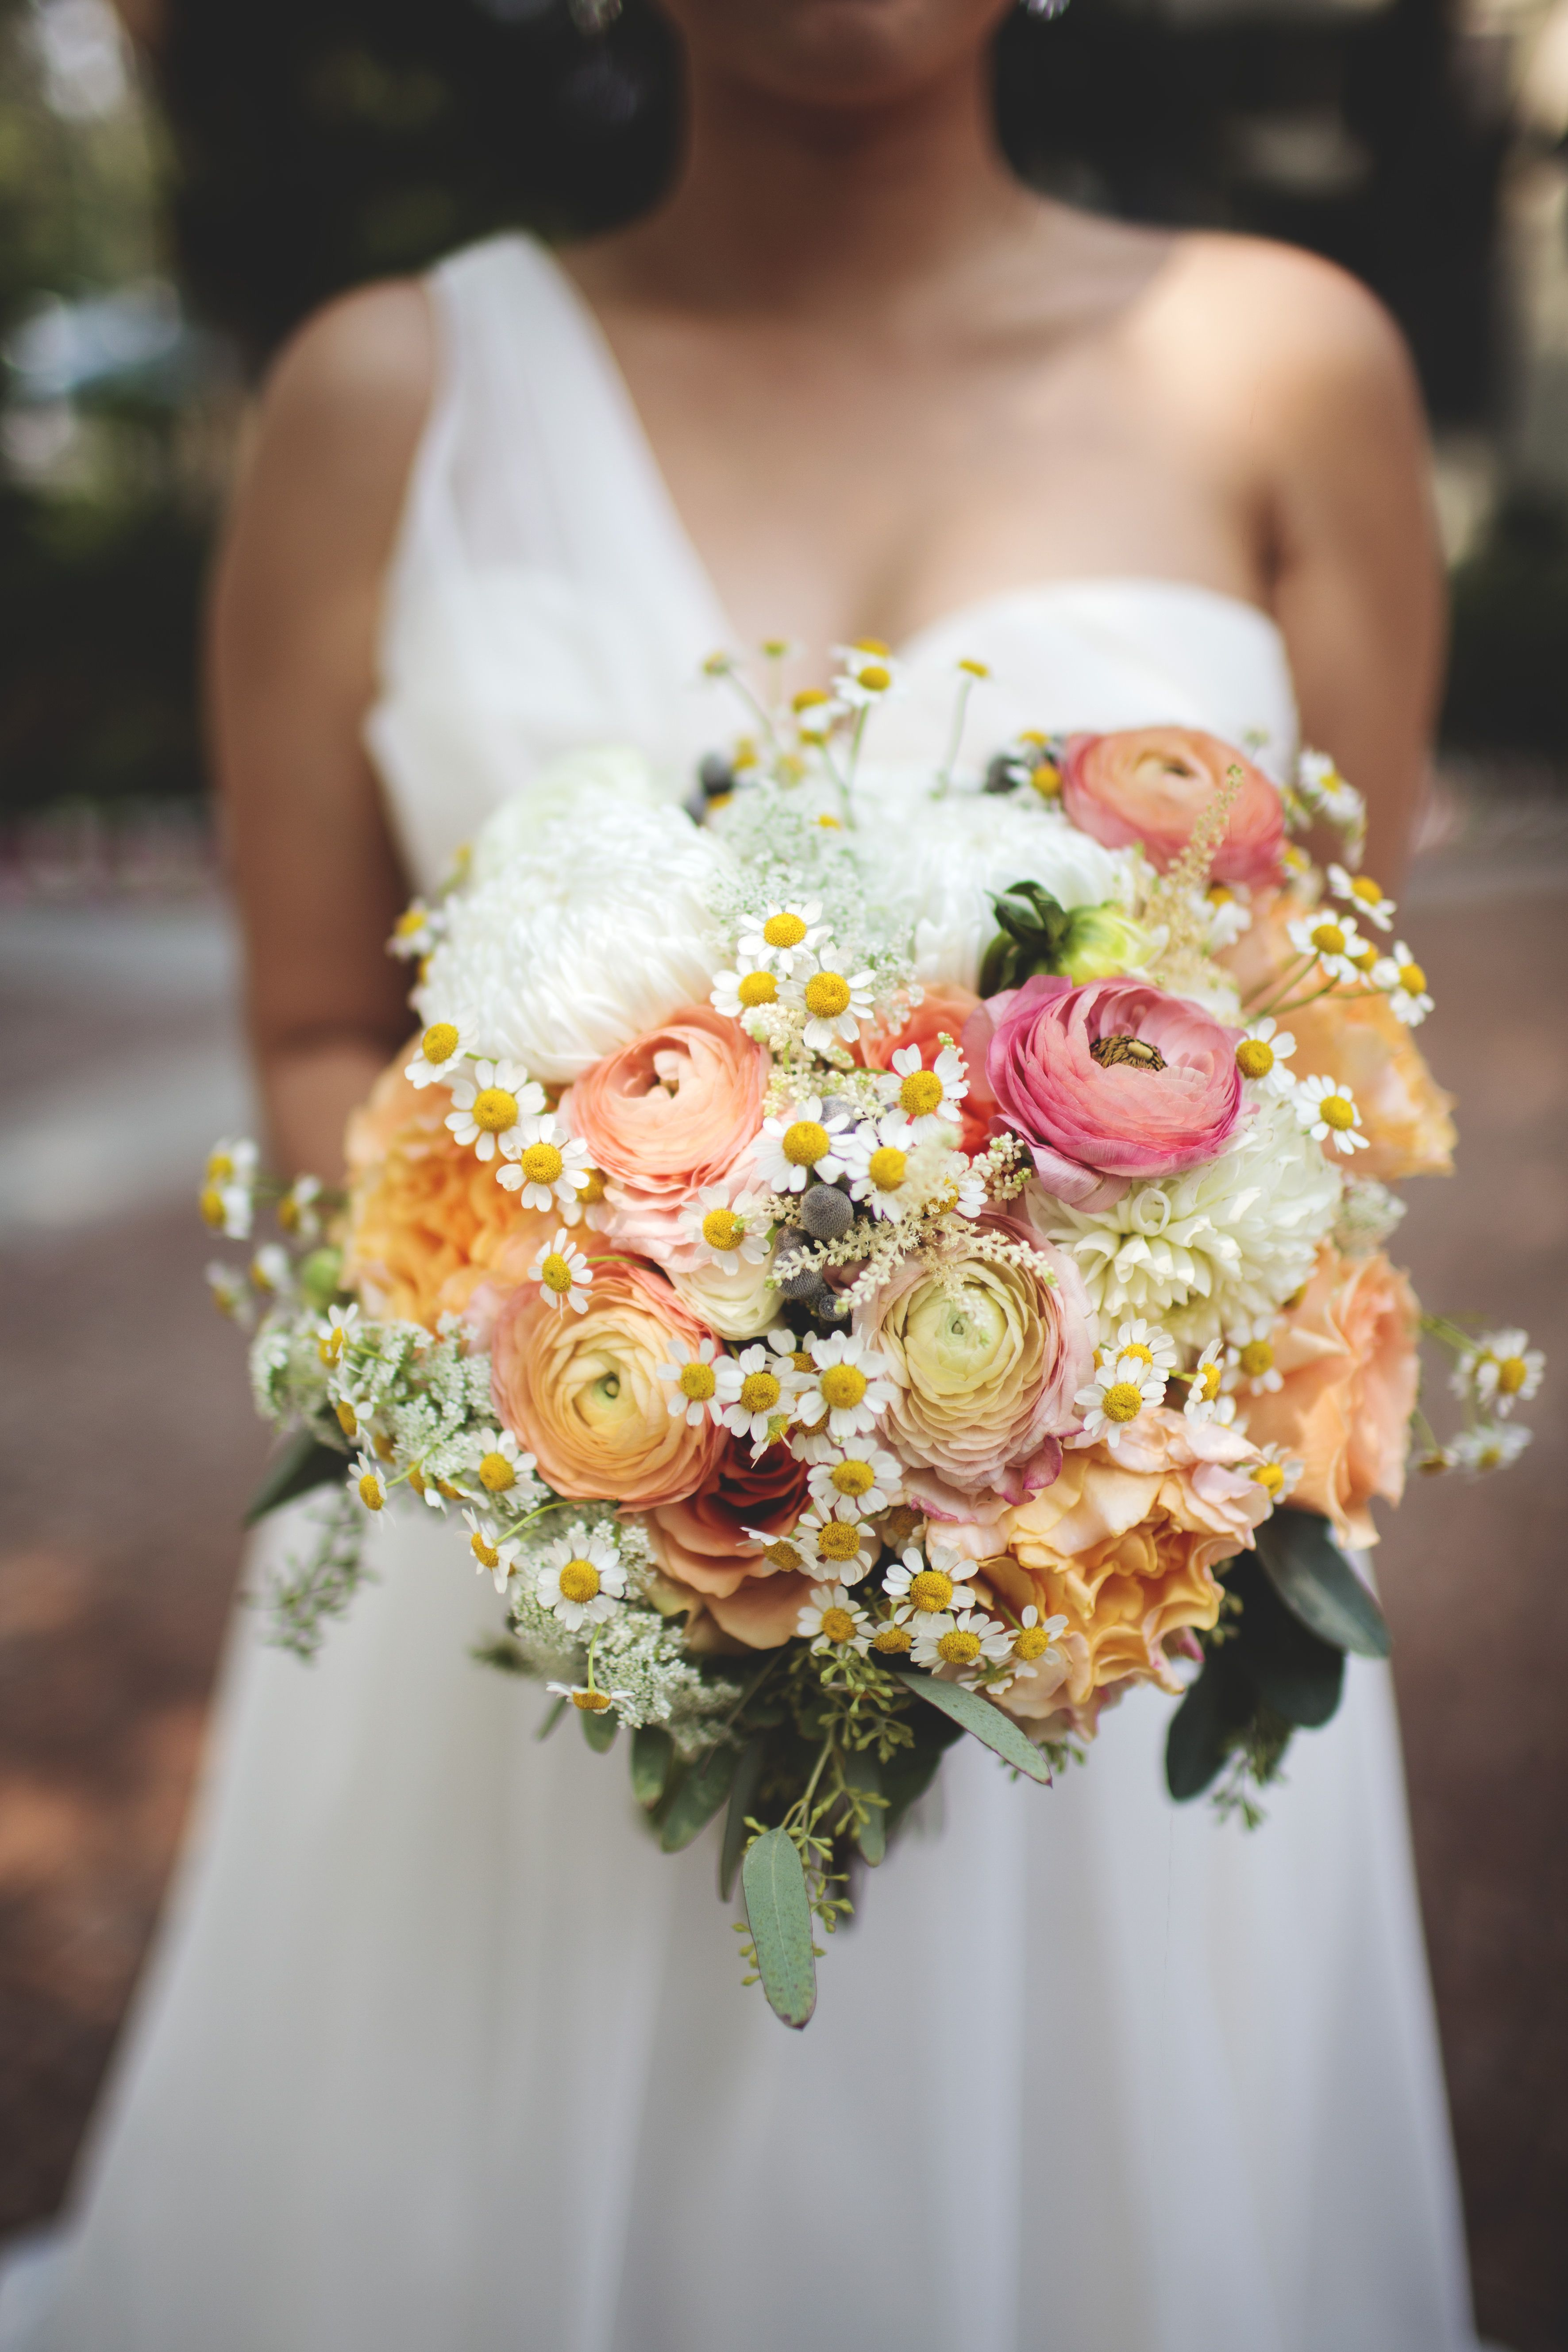 My very own bouquet. <3 #wedding #bouquet #daisies #floral #flowers ...